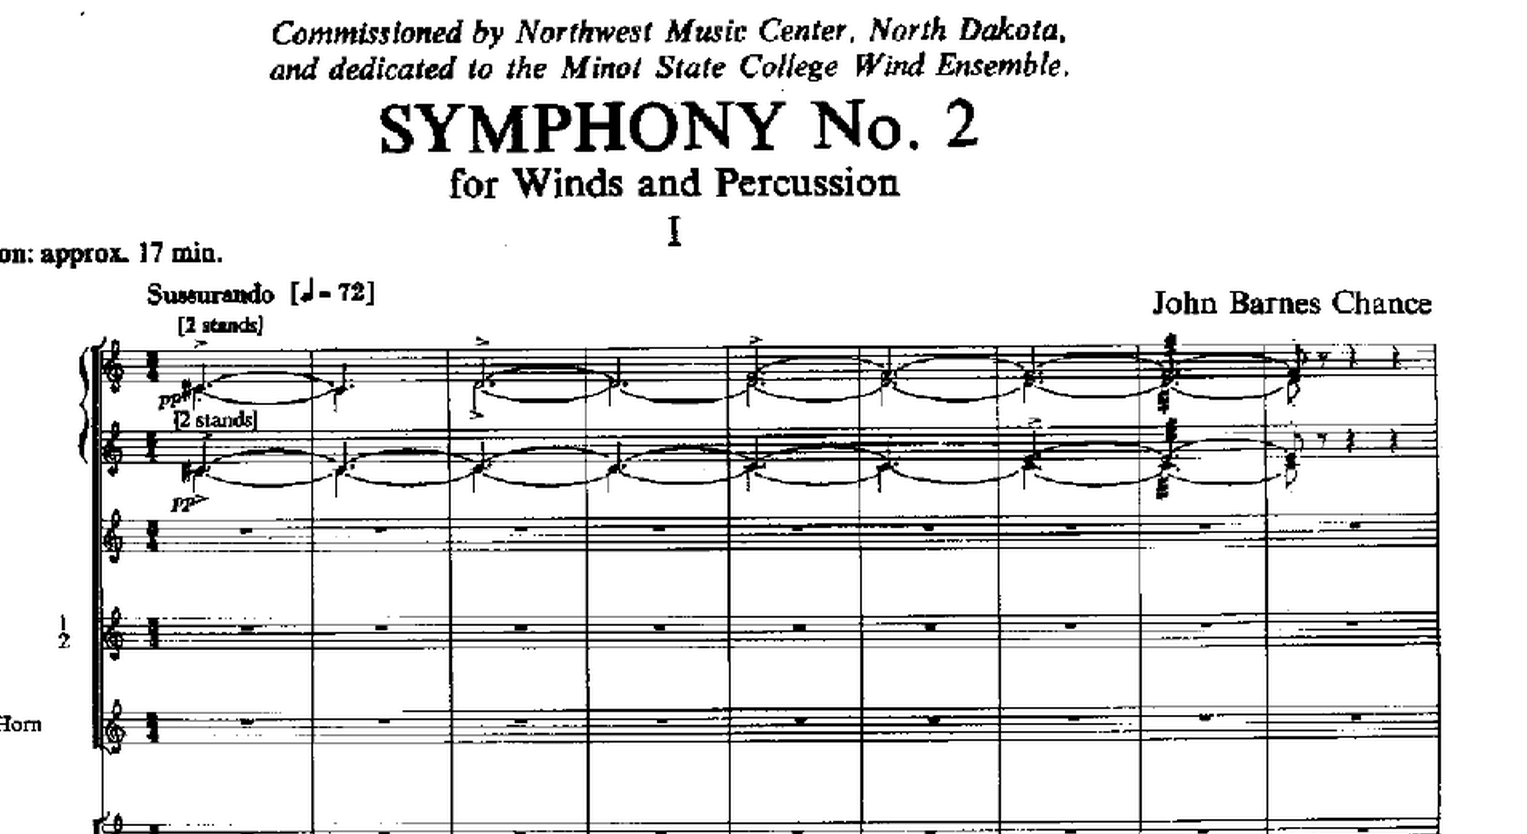 Symphony No. 2: Program Note